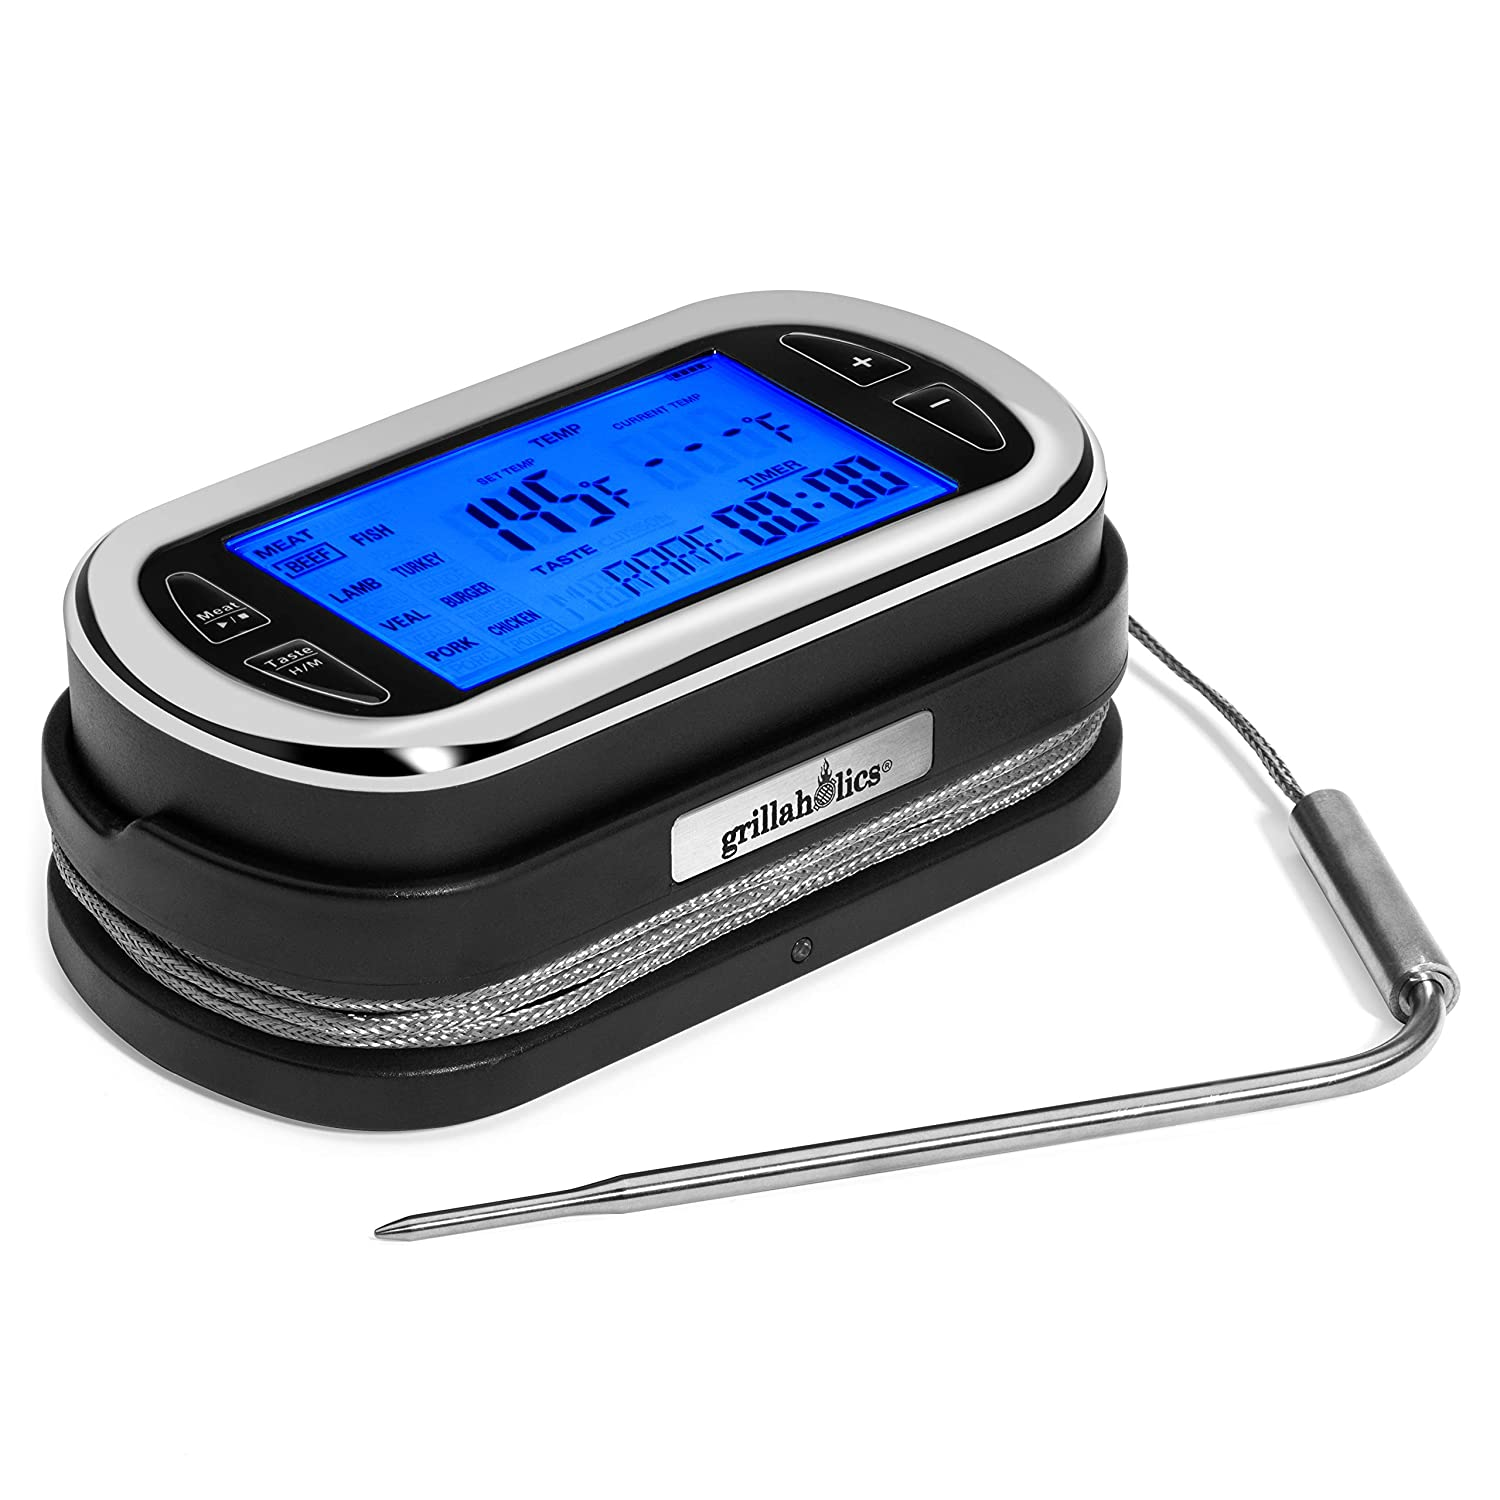 Grillaholics BBQ Grill Meat Thermometer - Remote Wireless Digital Meat Cooking Thermometer for Grilling, BBQ, Oven & Smokers - 200 Foot Range - Lifetime Manufacturers Warranty